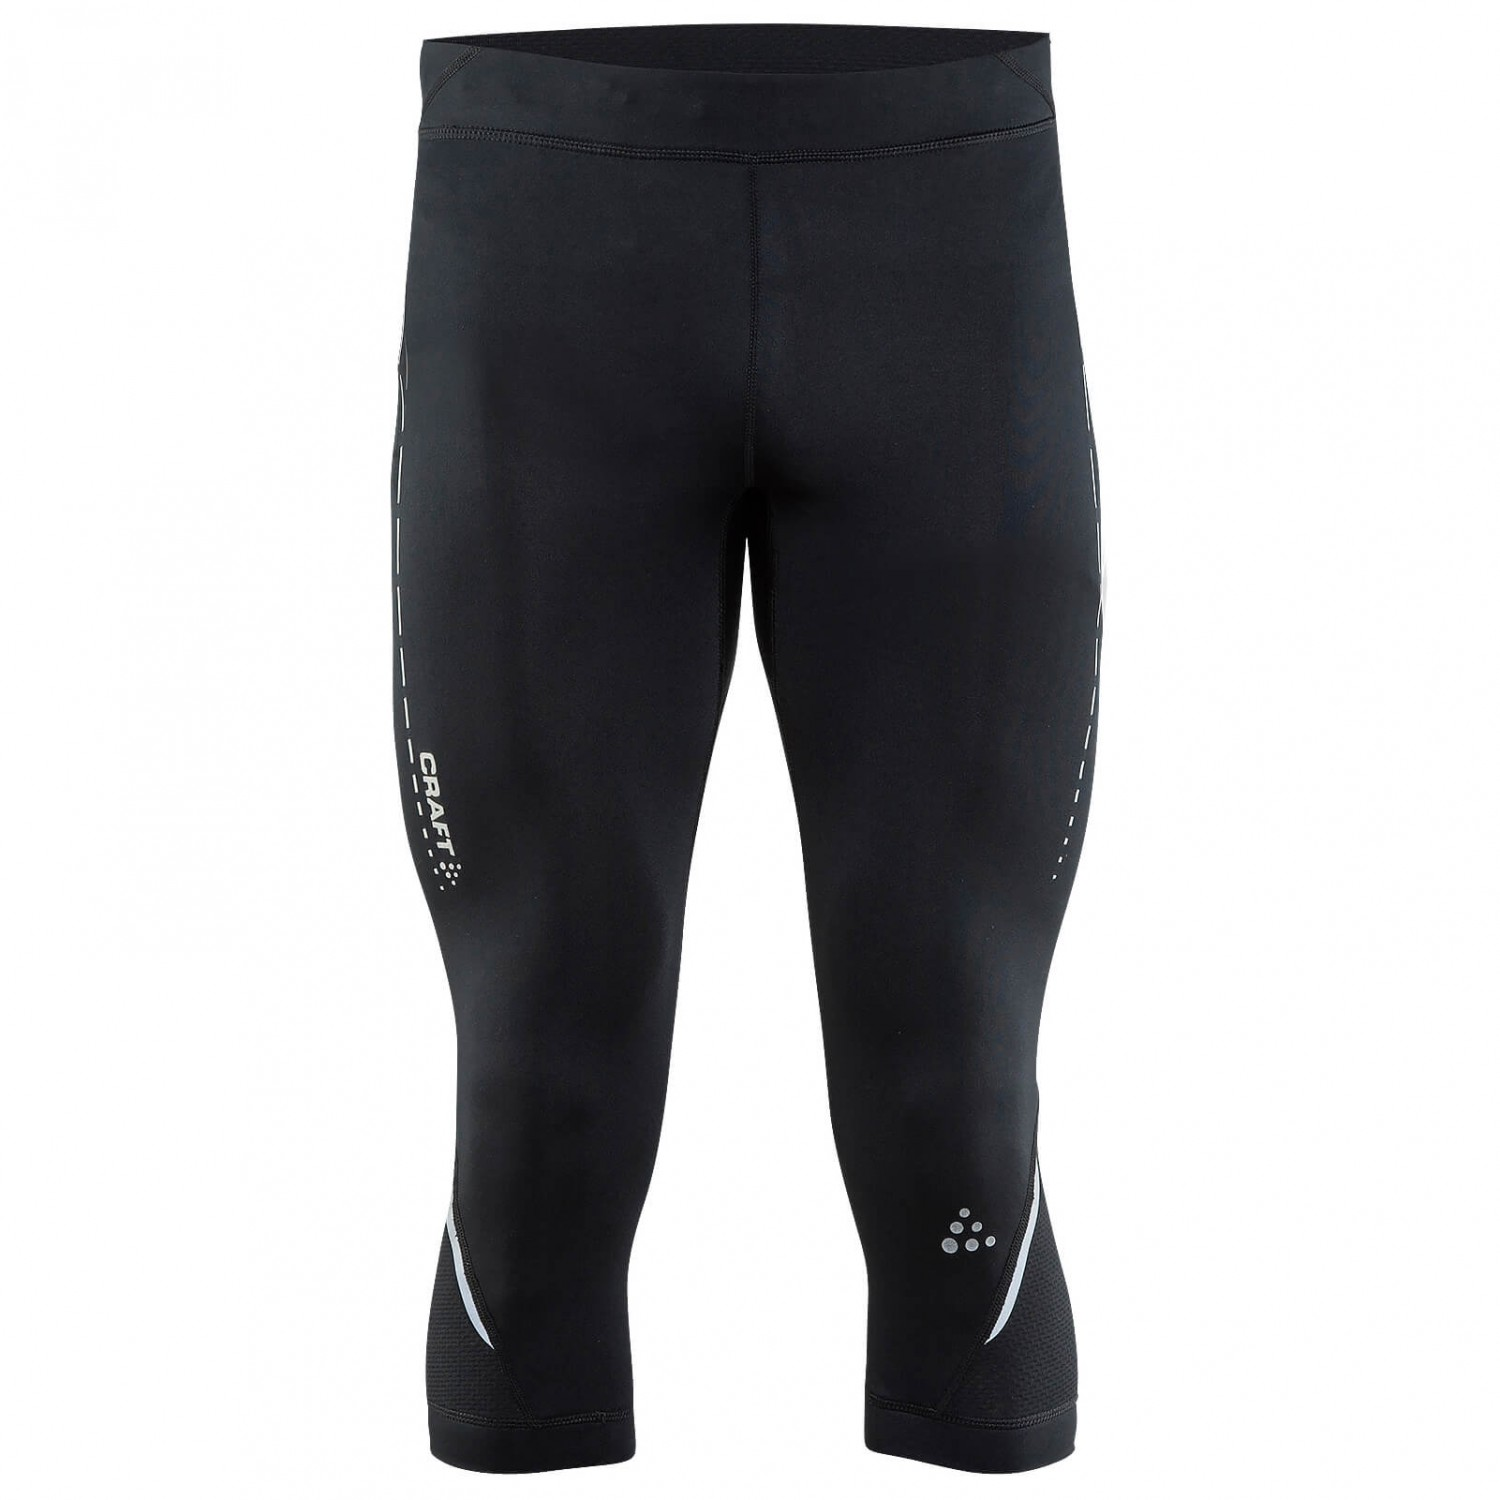 3258be0e Craft Essential Knickers - Running trousers Men's | Buy online ...